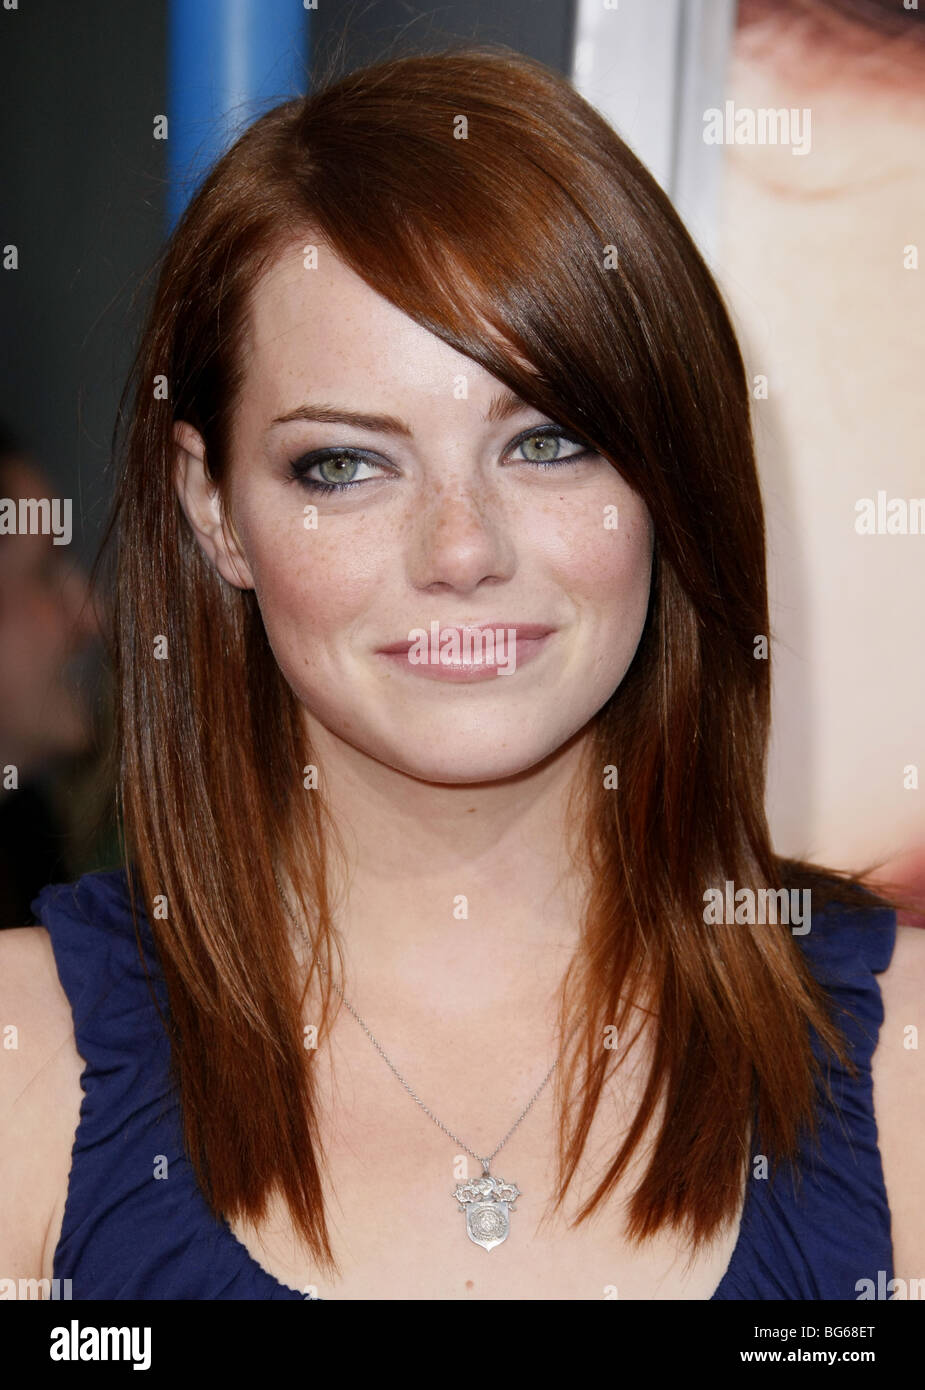 EMMA STONE PINEAPPLE EXPRESS PREMIERE WESTWOOD LOS ANGELES USA 31 Juillet 2008 Photo Stock